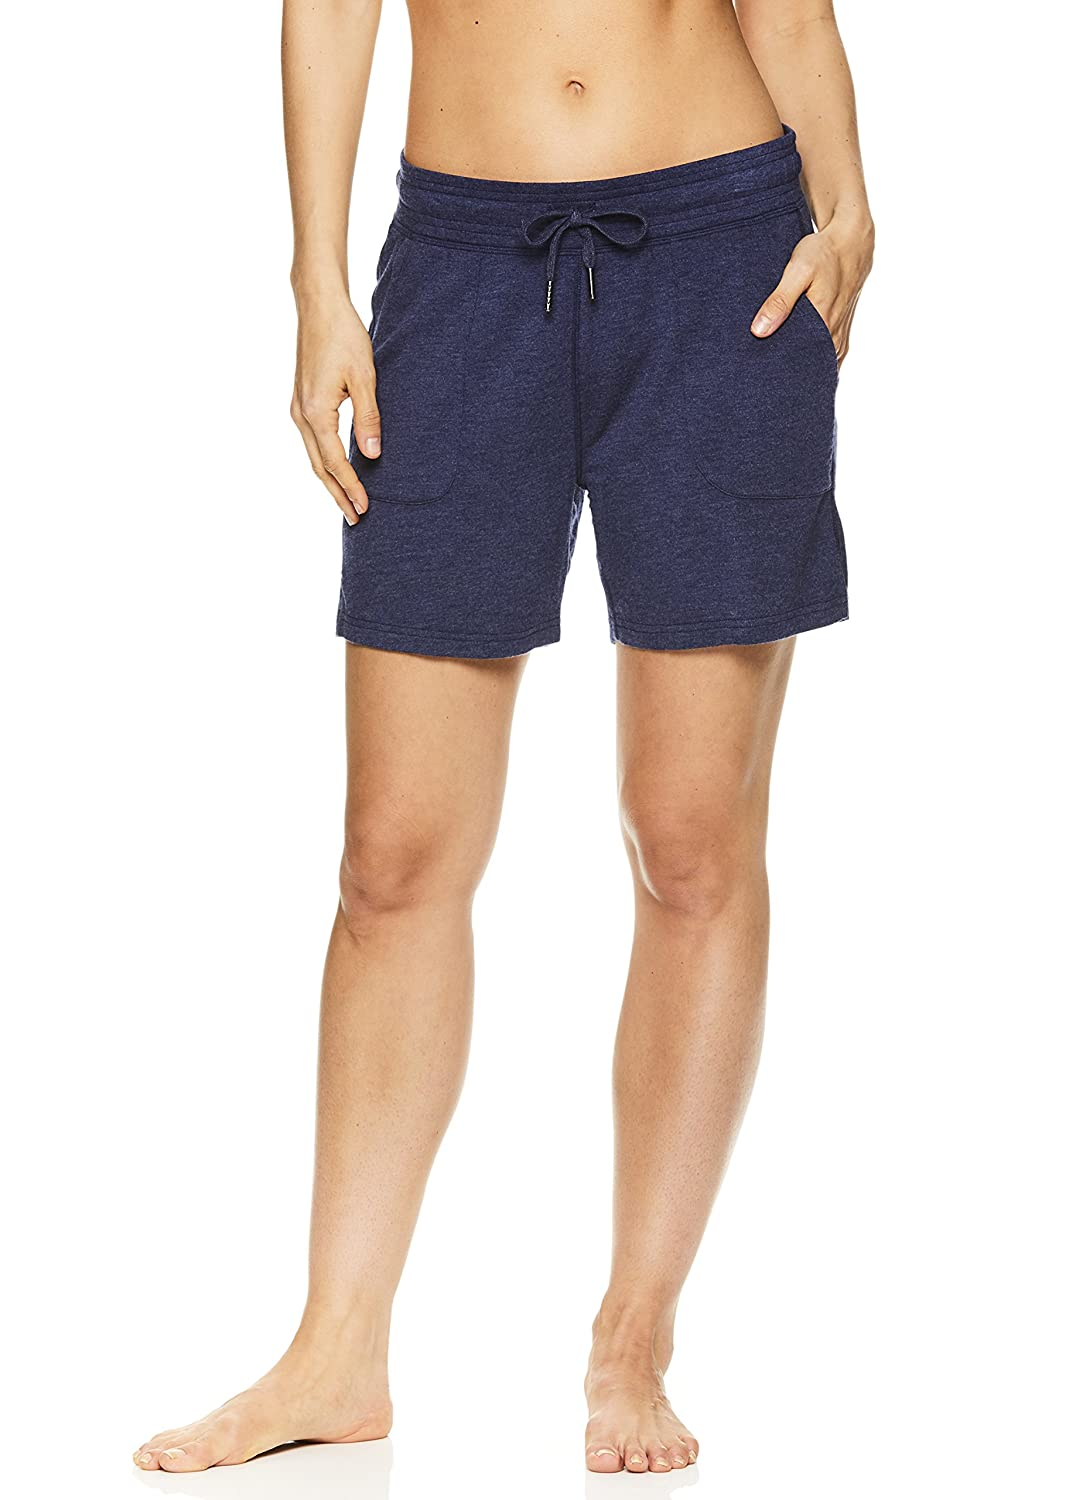 Gaiam Women's Warrior Yoga Short - Bike & Running Activewear Shorts w/Pockets - Medieval Blue Heather, X-Large GAW182SH04015